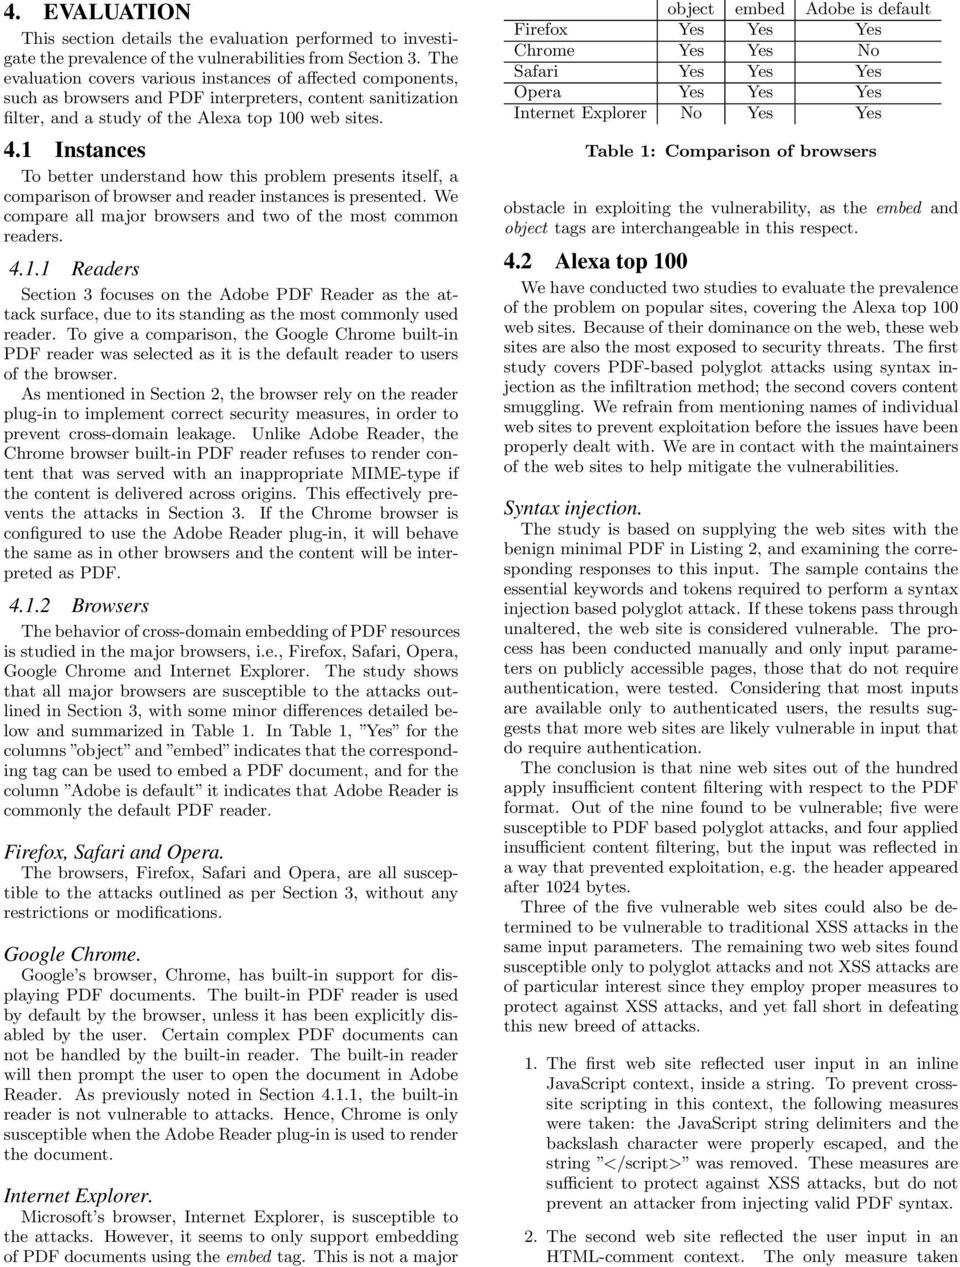 1 Instances To better understand how this problem presents itself, a comparison of browser and reader instances is presented. We compare all major browsers and two of the most common readers. 4.1.1 Readers Section 3 focuses on the Adobe PDF Reader as the attack surface, due to its standing as the most commonly used reader.